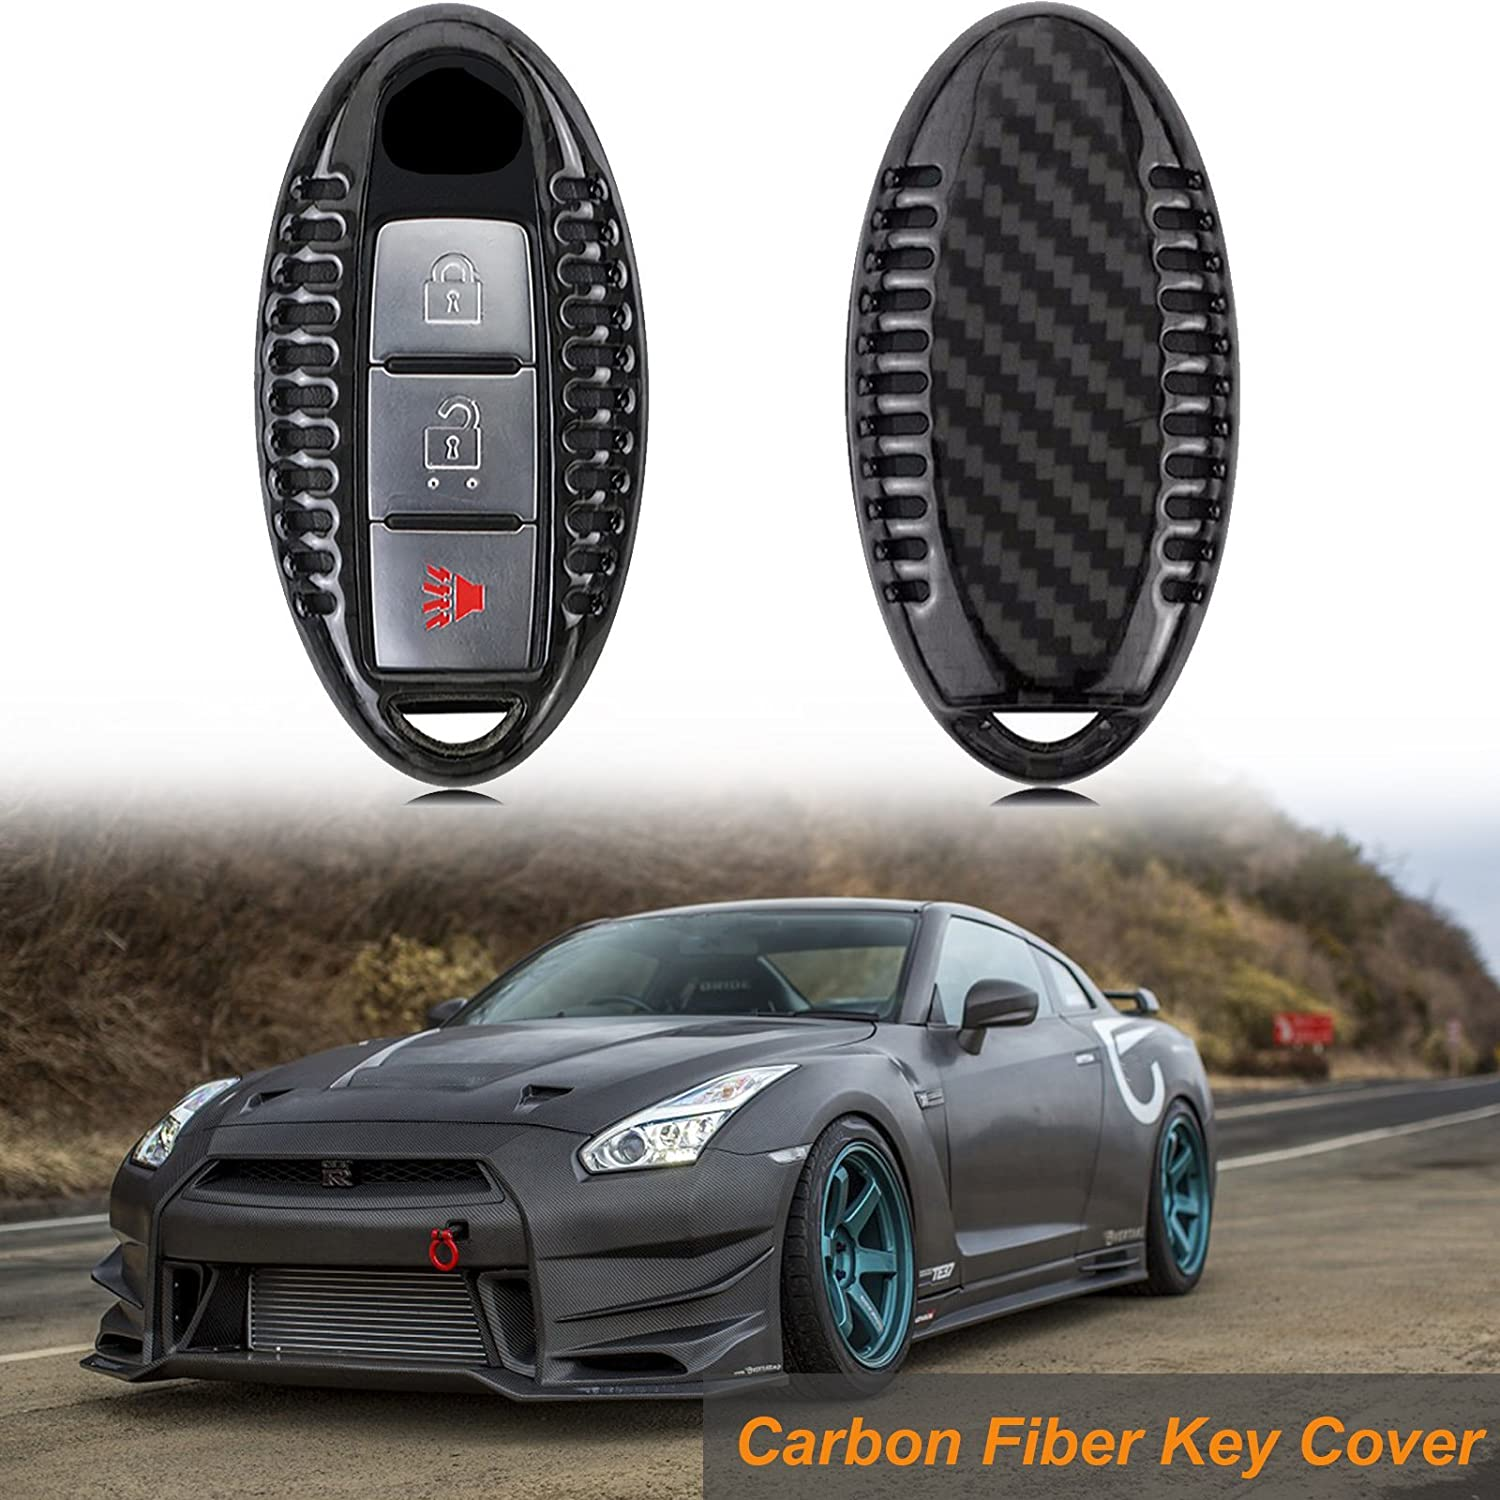 x xotic tech Real Carbon Fiber Remote Keyless Entry Key FOB Cover Case Shell for Infiniti Q50 Nissan Altima GT-R 370Z etc